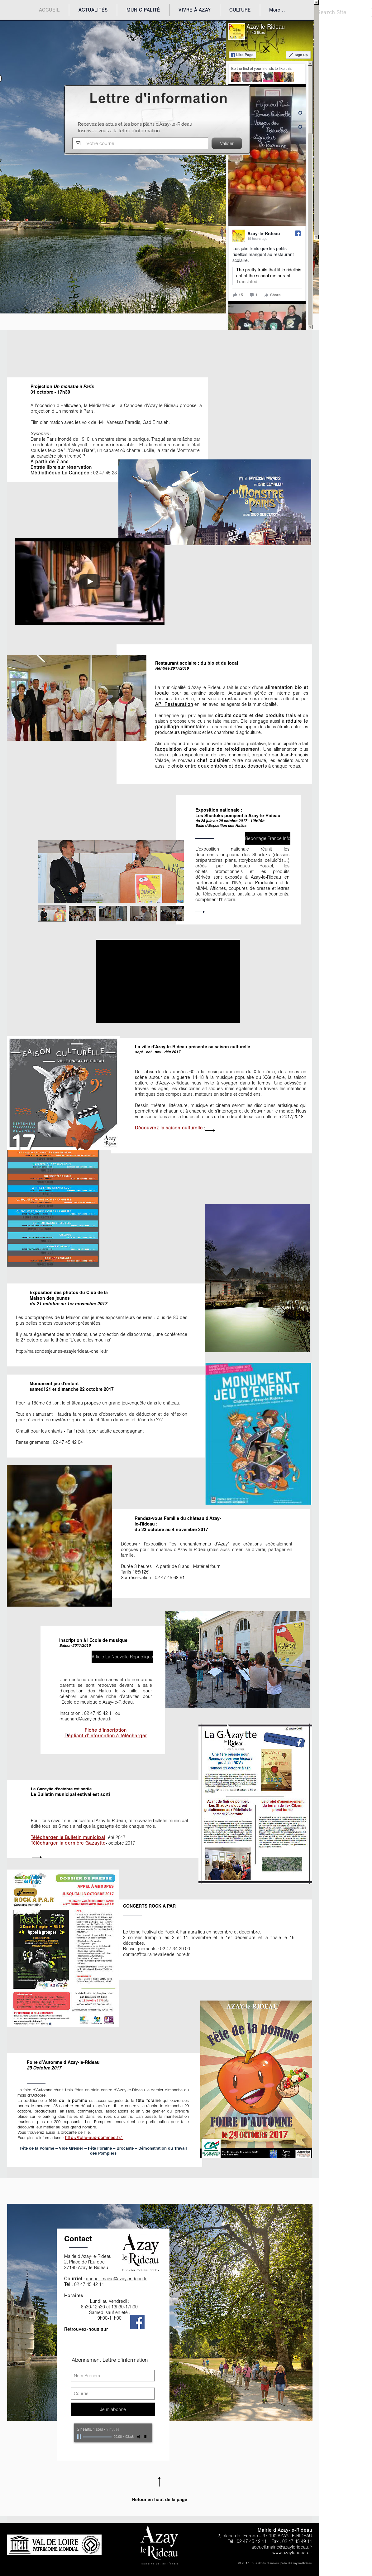 Mairie Azay Le Rideau Competitors, Revenue and Employees - Owler ...